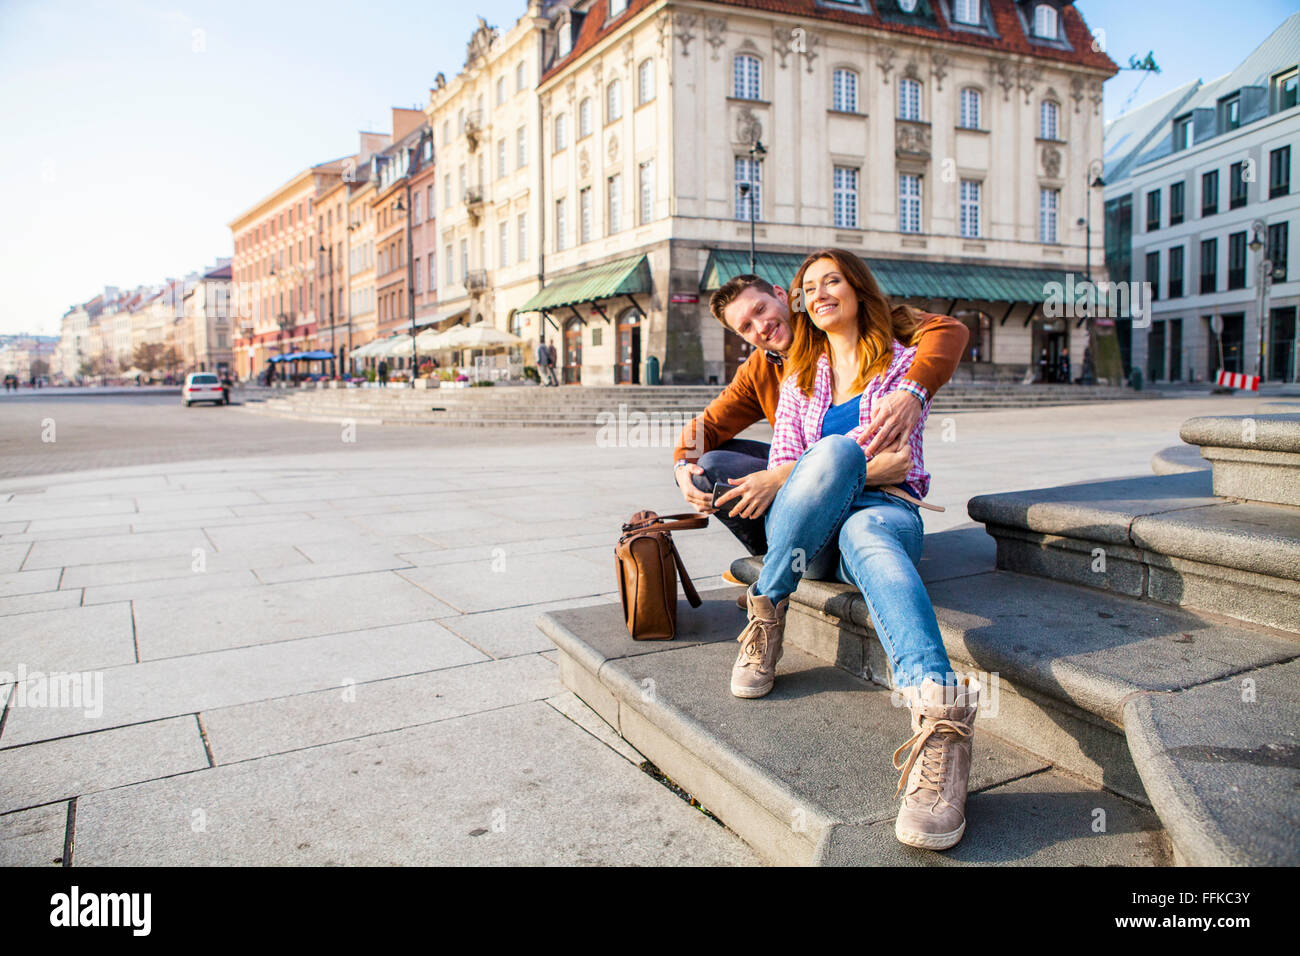 Mid adult couple on a city break resting on town square - Stock Image